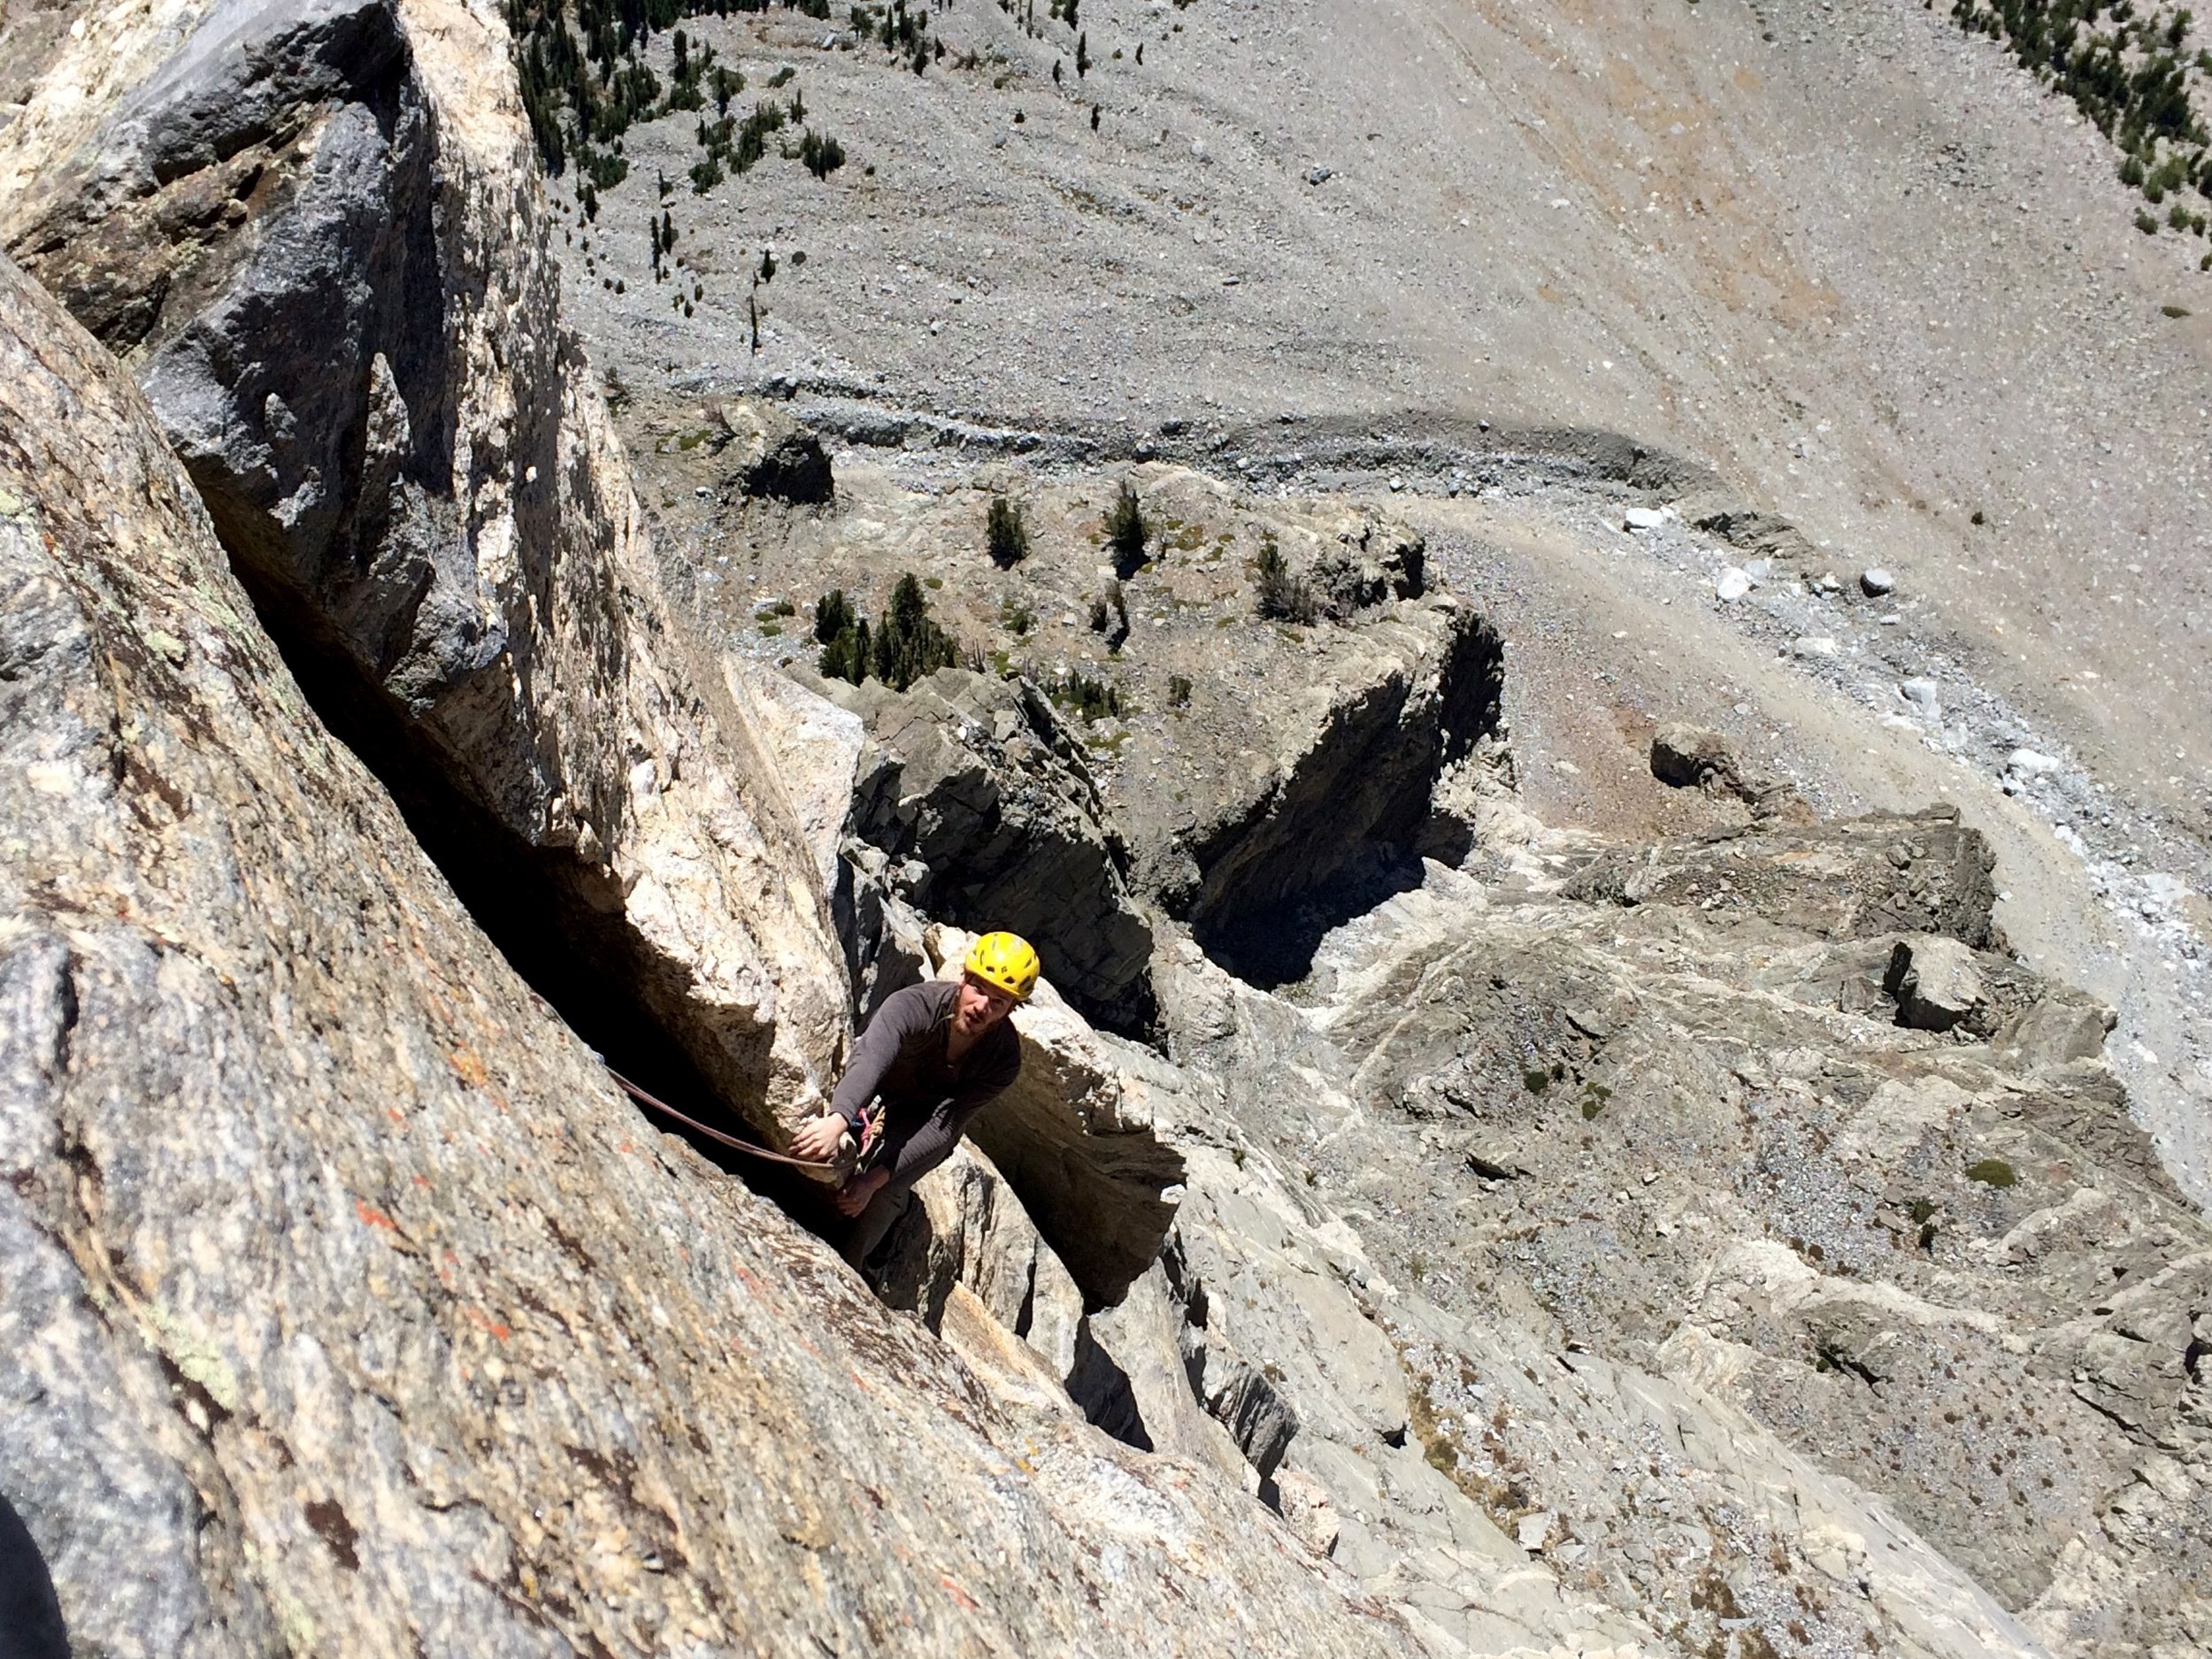 Turns out 5.6 offwidth is too hard for me, so I laybacked this section. Whoops!